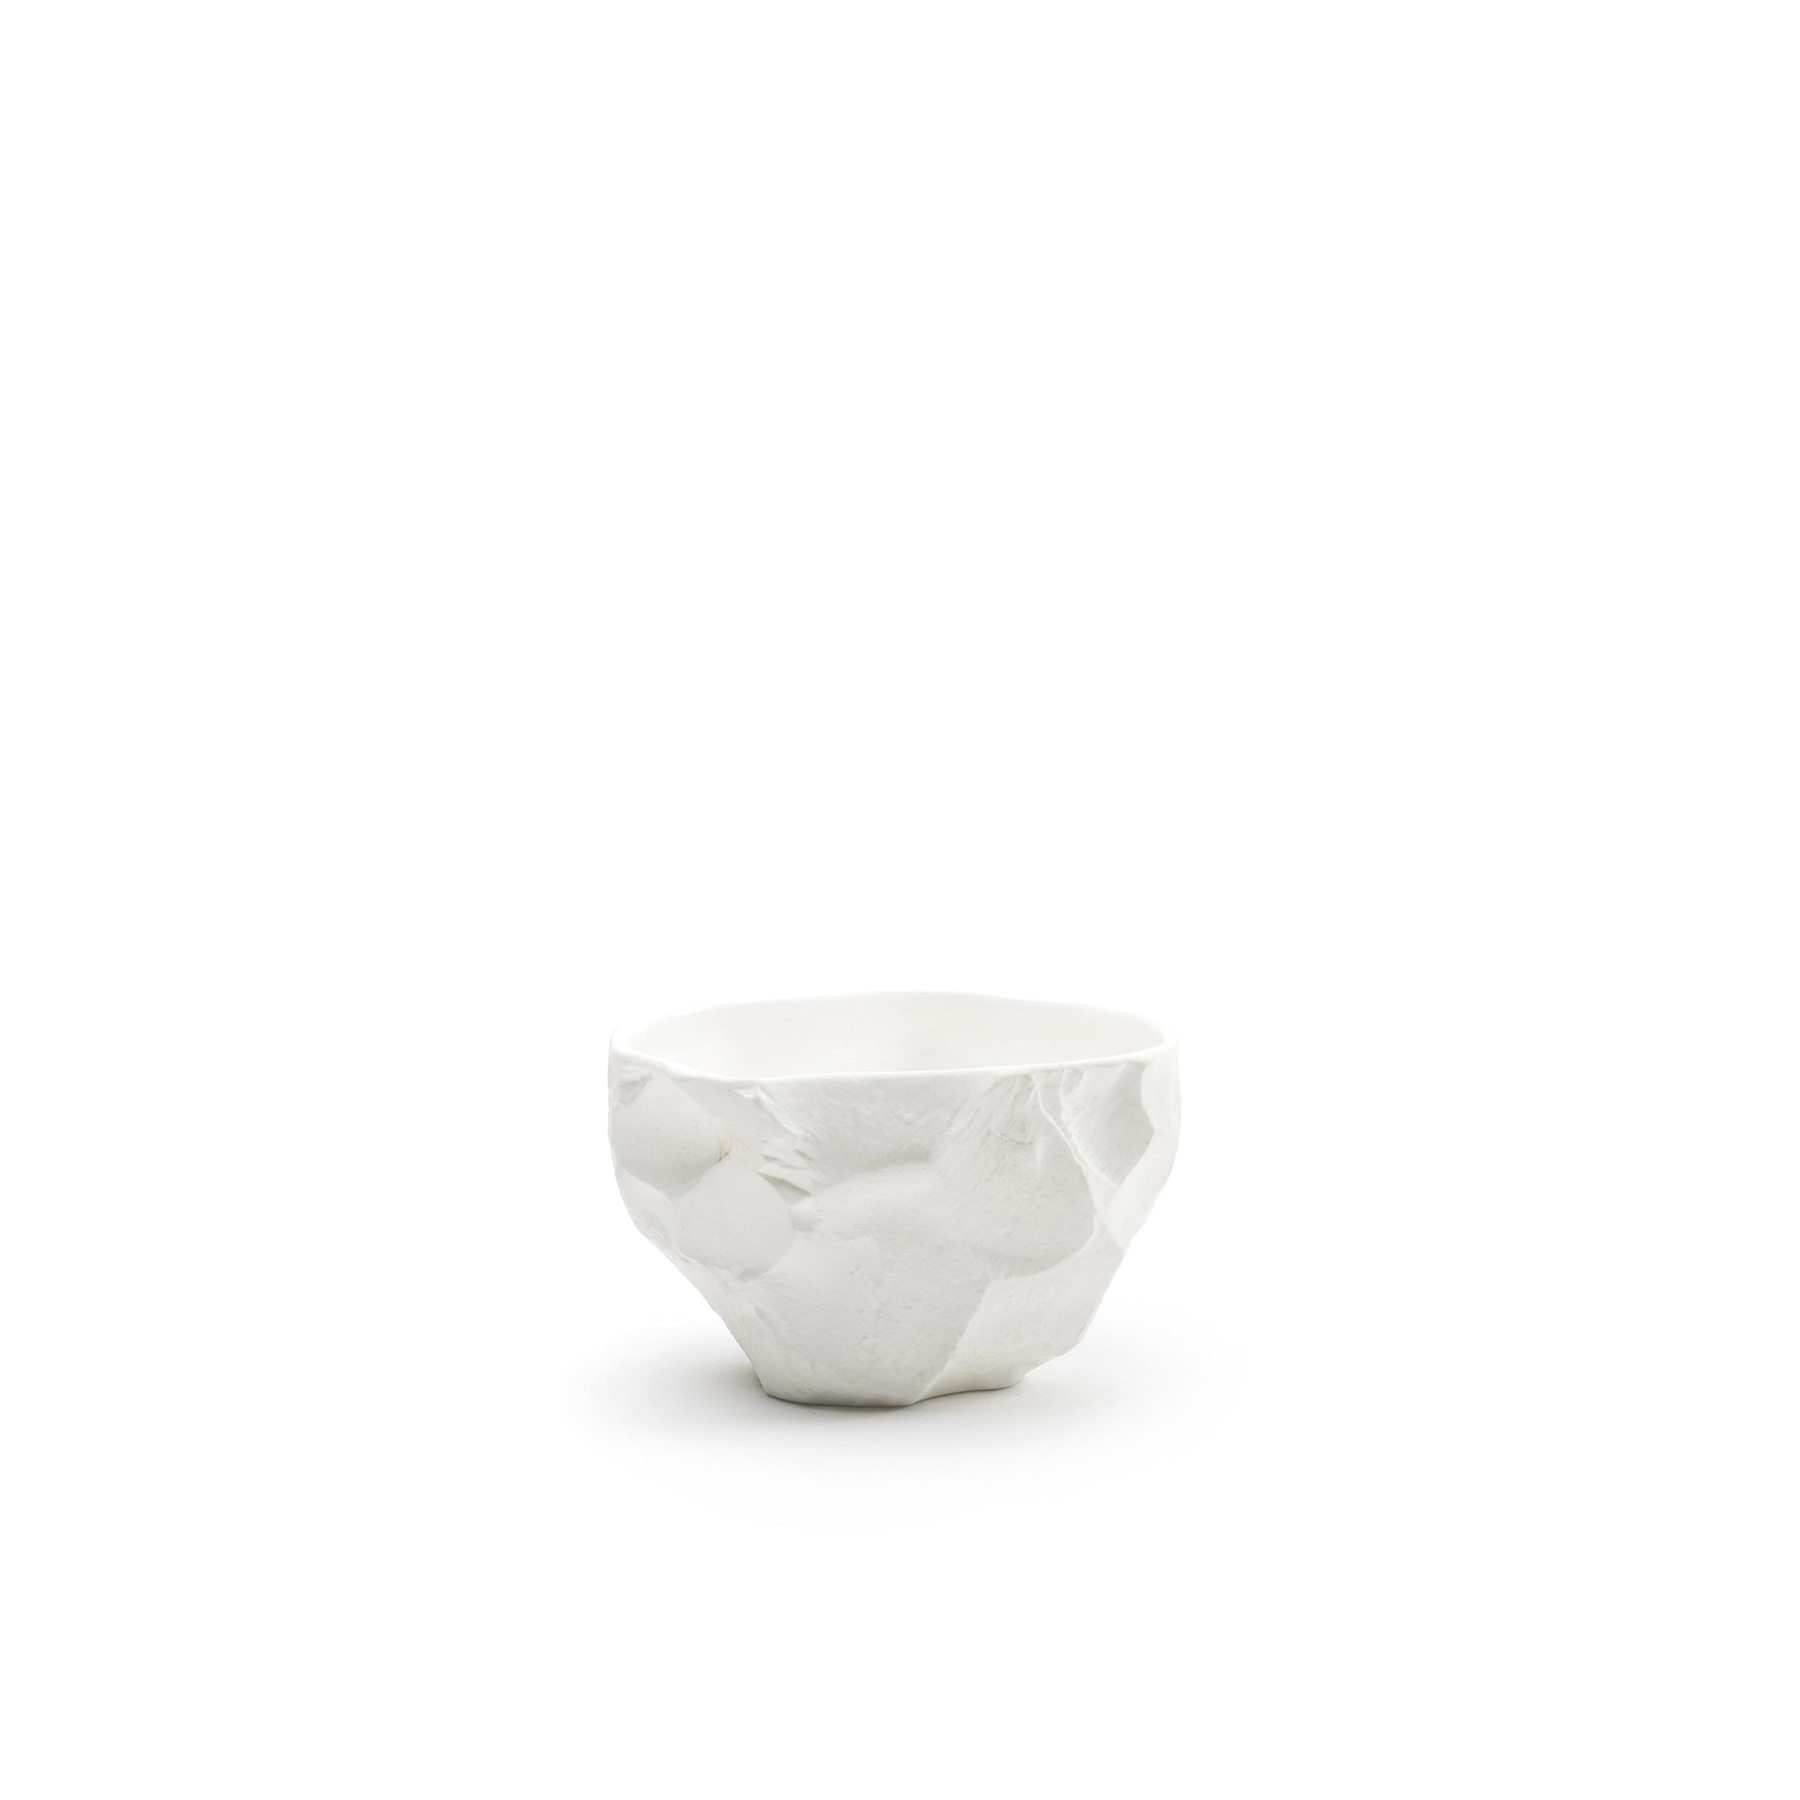 Crockery White Small Bowl - A collection of fine bone china tableware slip-cast from plaster models carved by hand, with glazed interior for functionality and raw exterior reflecting the modest surface texture of the plaster original. The process of slip-casting begins with the creation of a three-dimensional model of the design known as a master by a professional model-maker, from which the production mould is cast. Crockery bypasses this process by placing the responsibility of both designer and model-maker in the hands of Max Lamb. Using the tools of a stone mason Max chips and carves a solid block of plaster to make a series of tableware, the design of each formed quite simply out of their own making. Microwave and dishwasher safe.  | Matter of Stuff